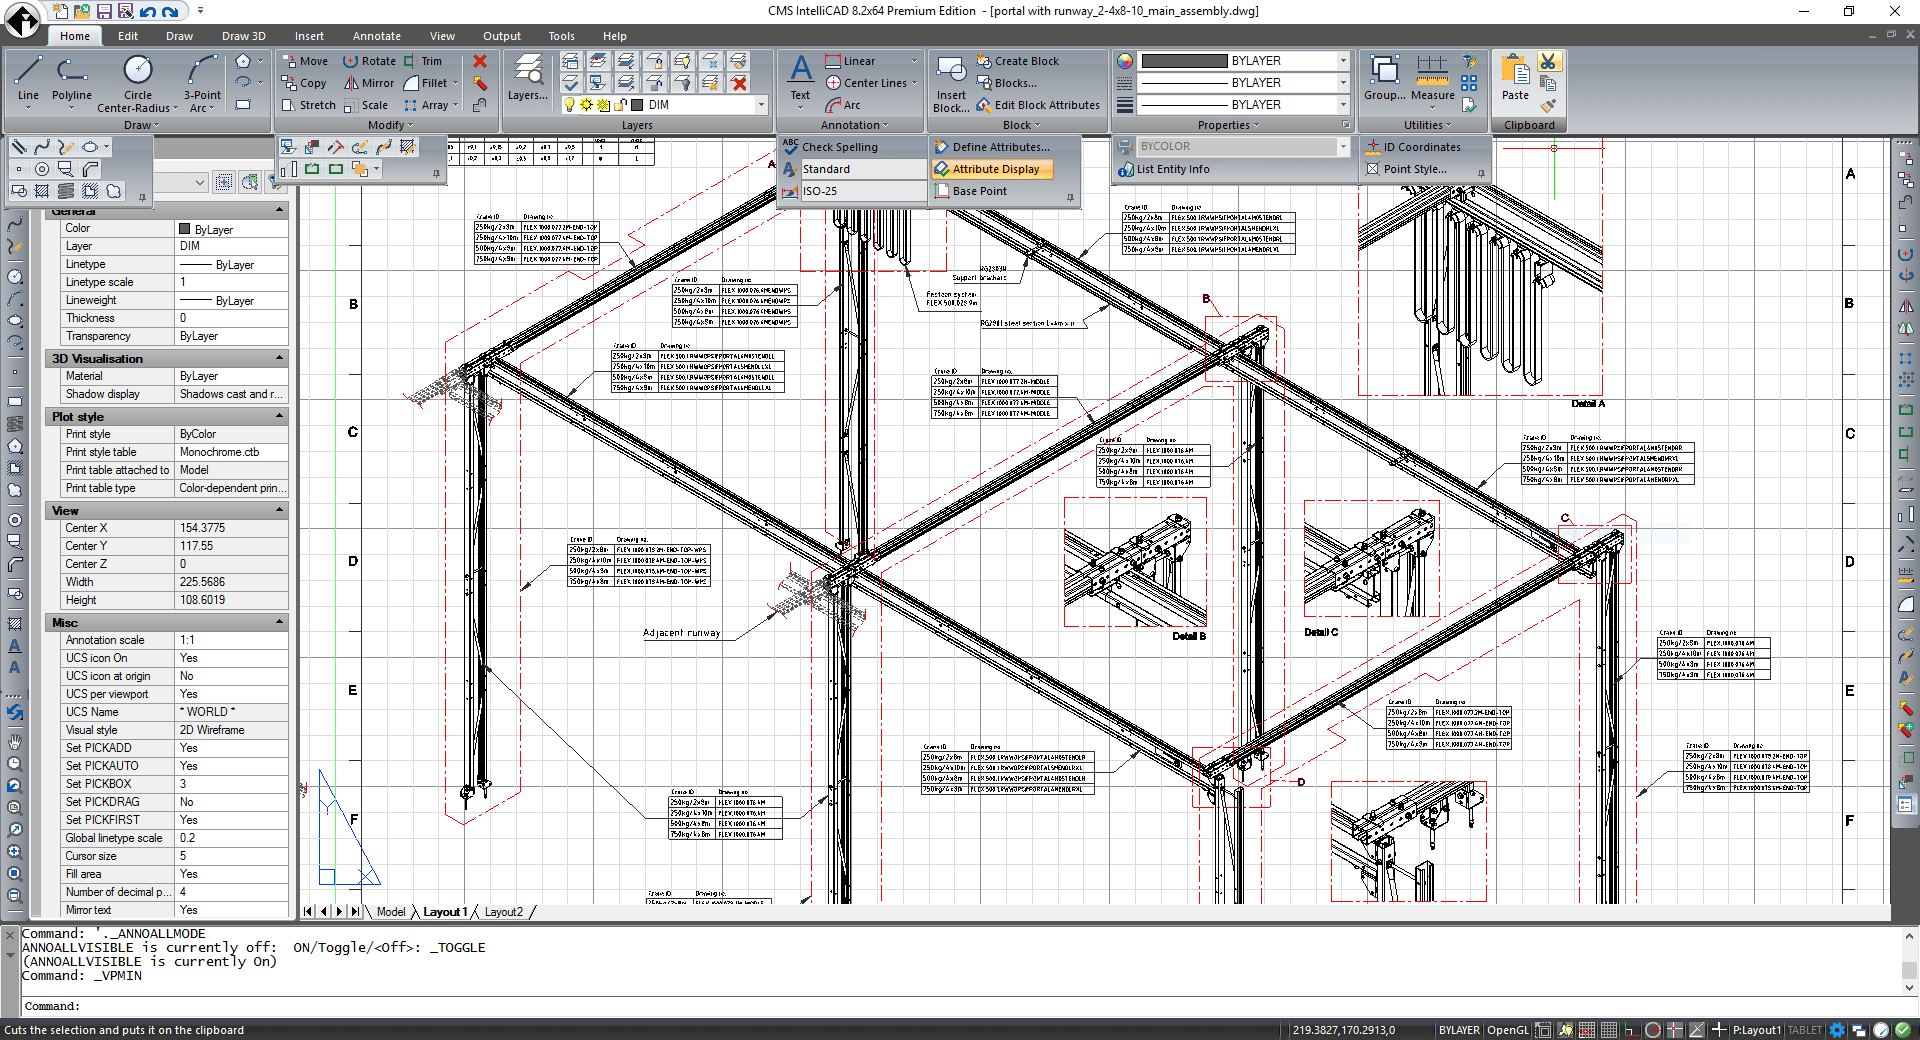 2d 3d Cad Software Cms Intellicad Professional And: 3d cad software